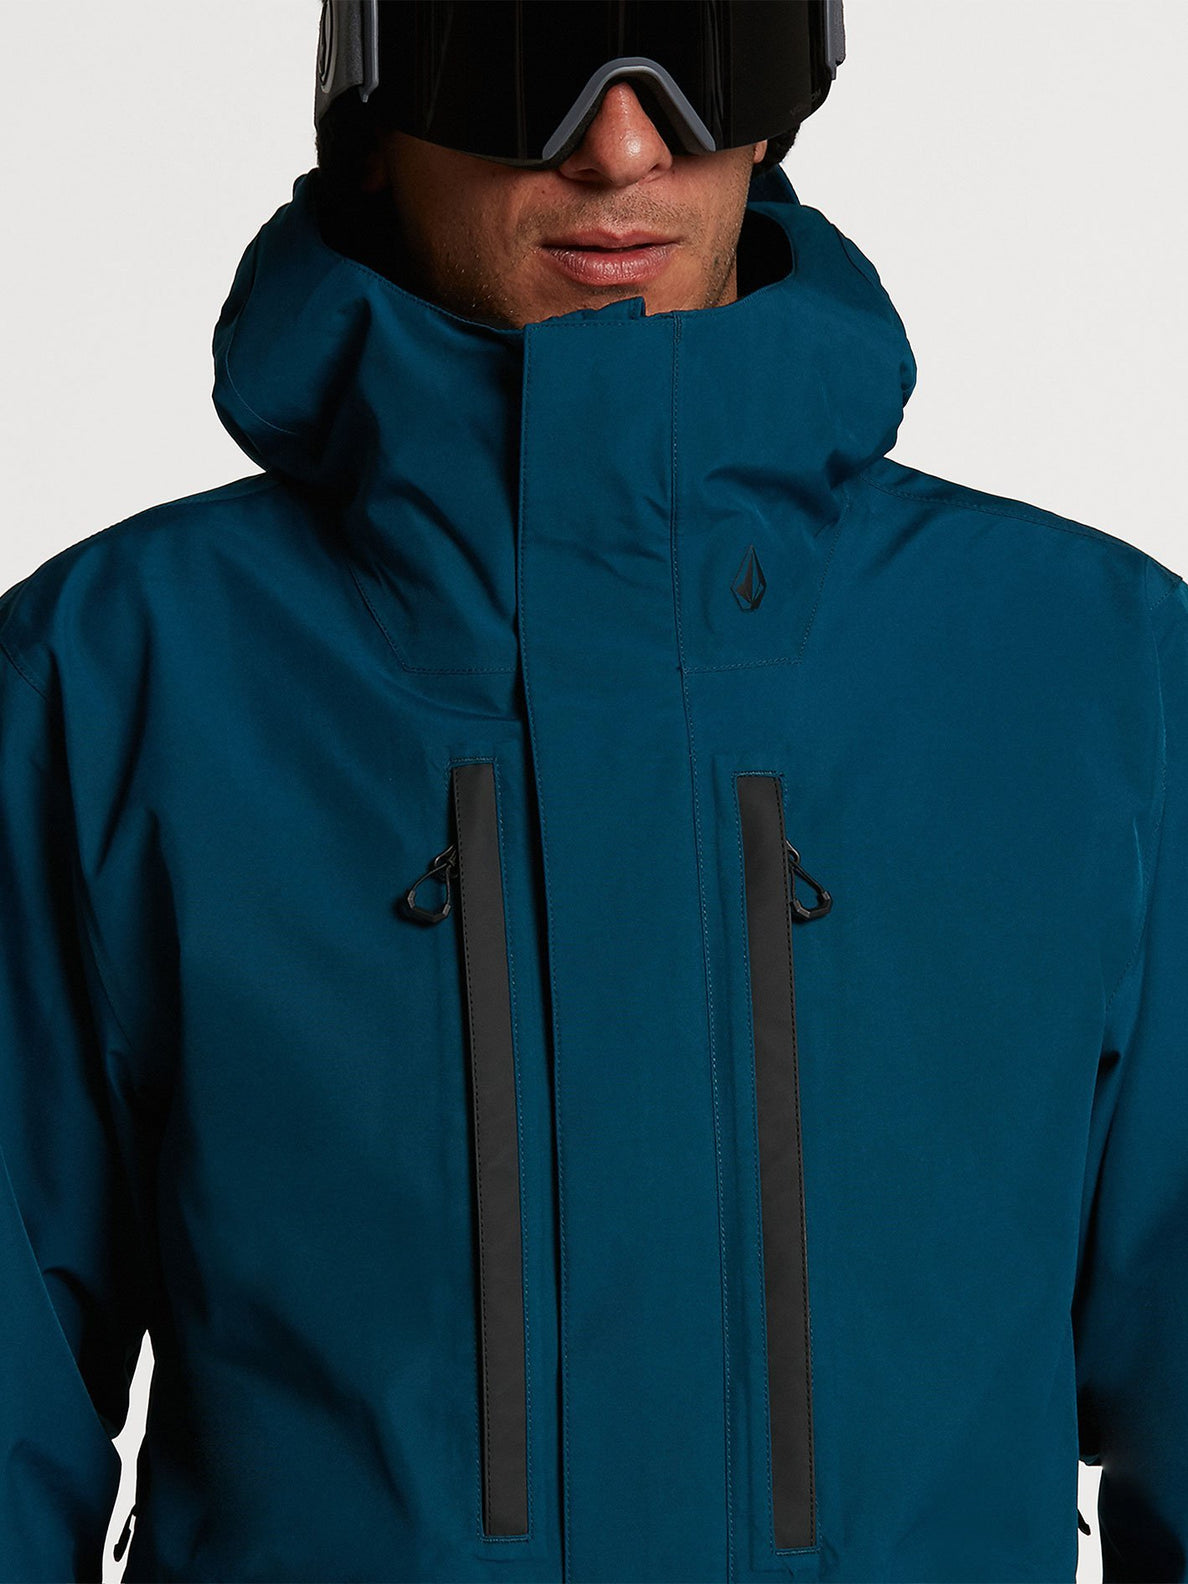 TEN GORE-TEX JACKET (G0652116_RSG) [02]